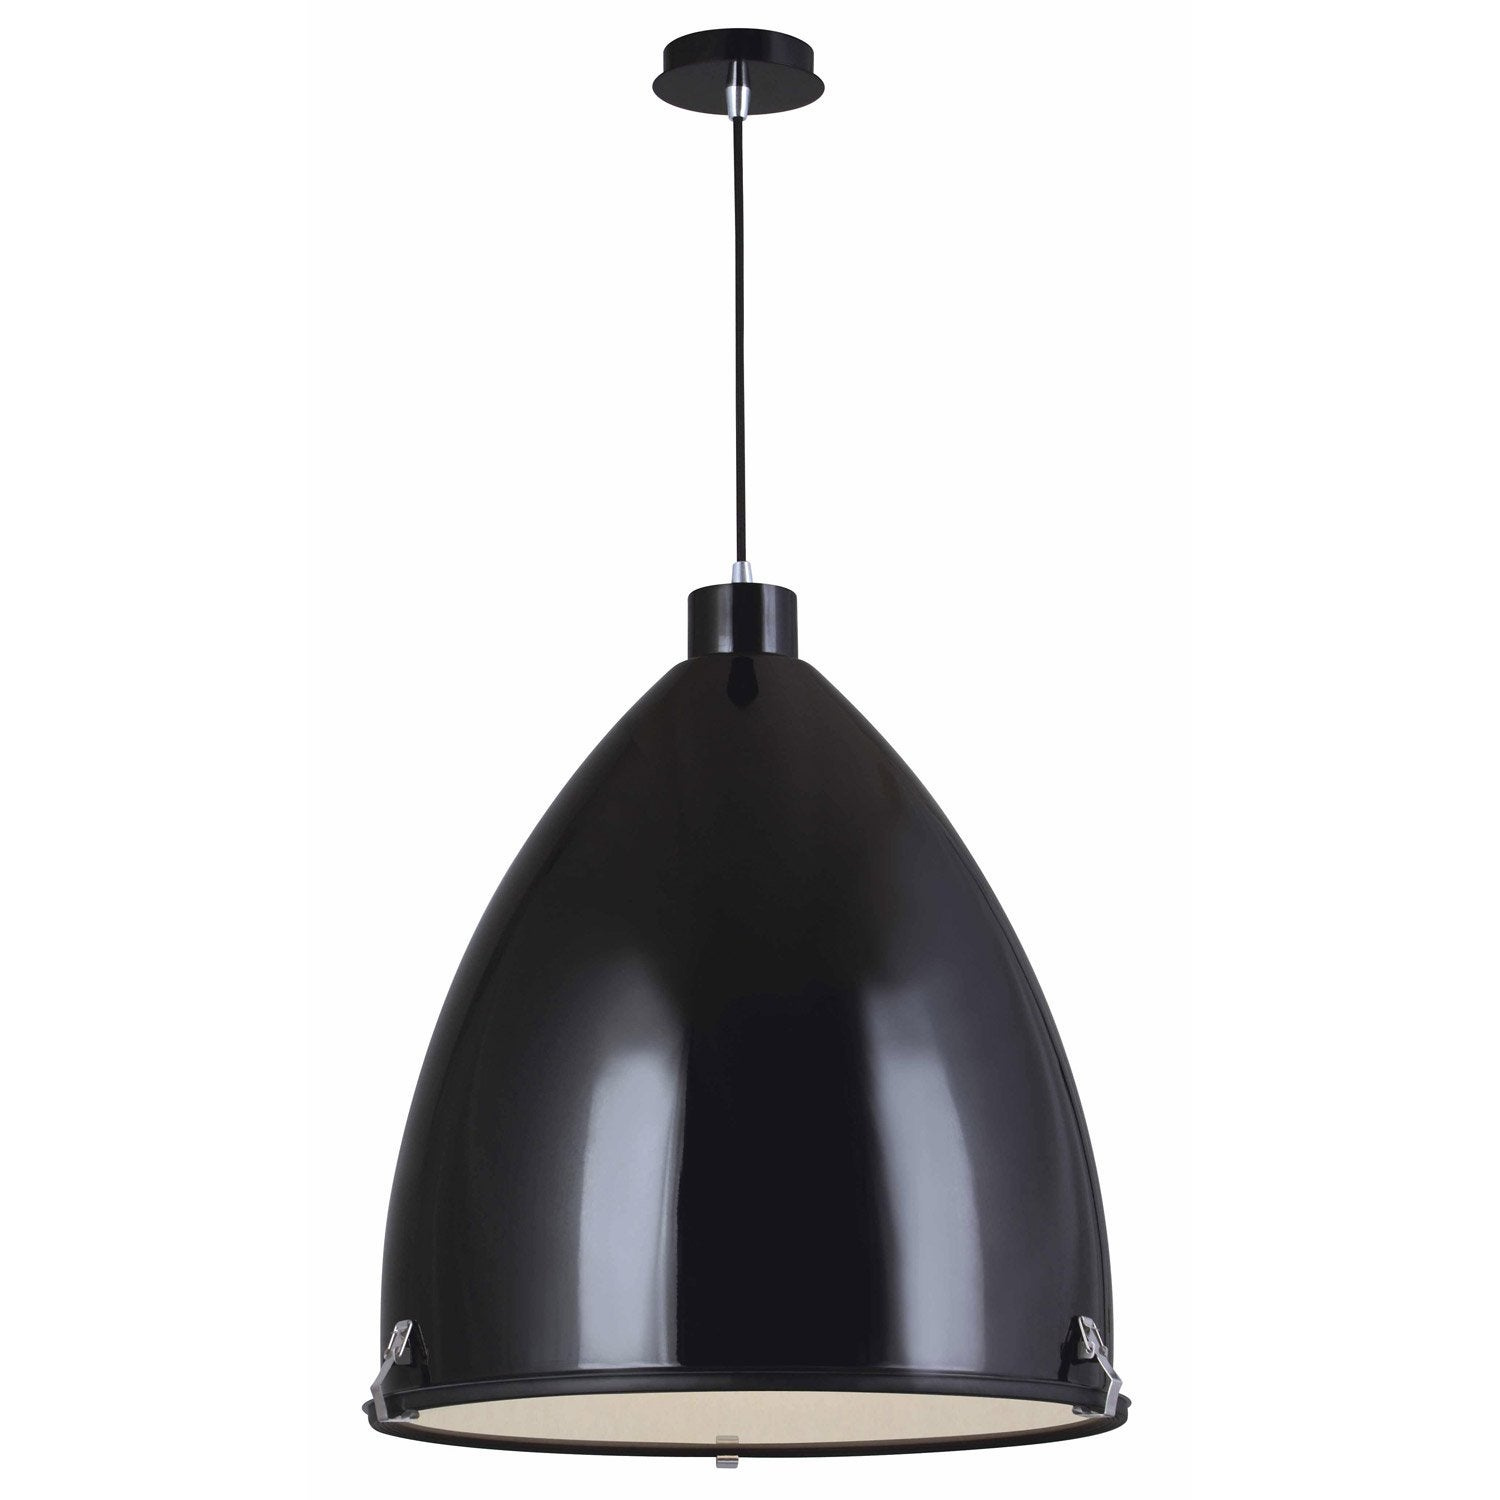 Suspension industriel loft m tal noir 1 x 60 w lucide - Suspension industrielle leroy merlin ...